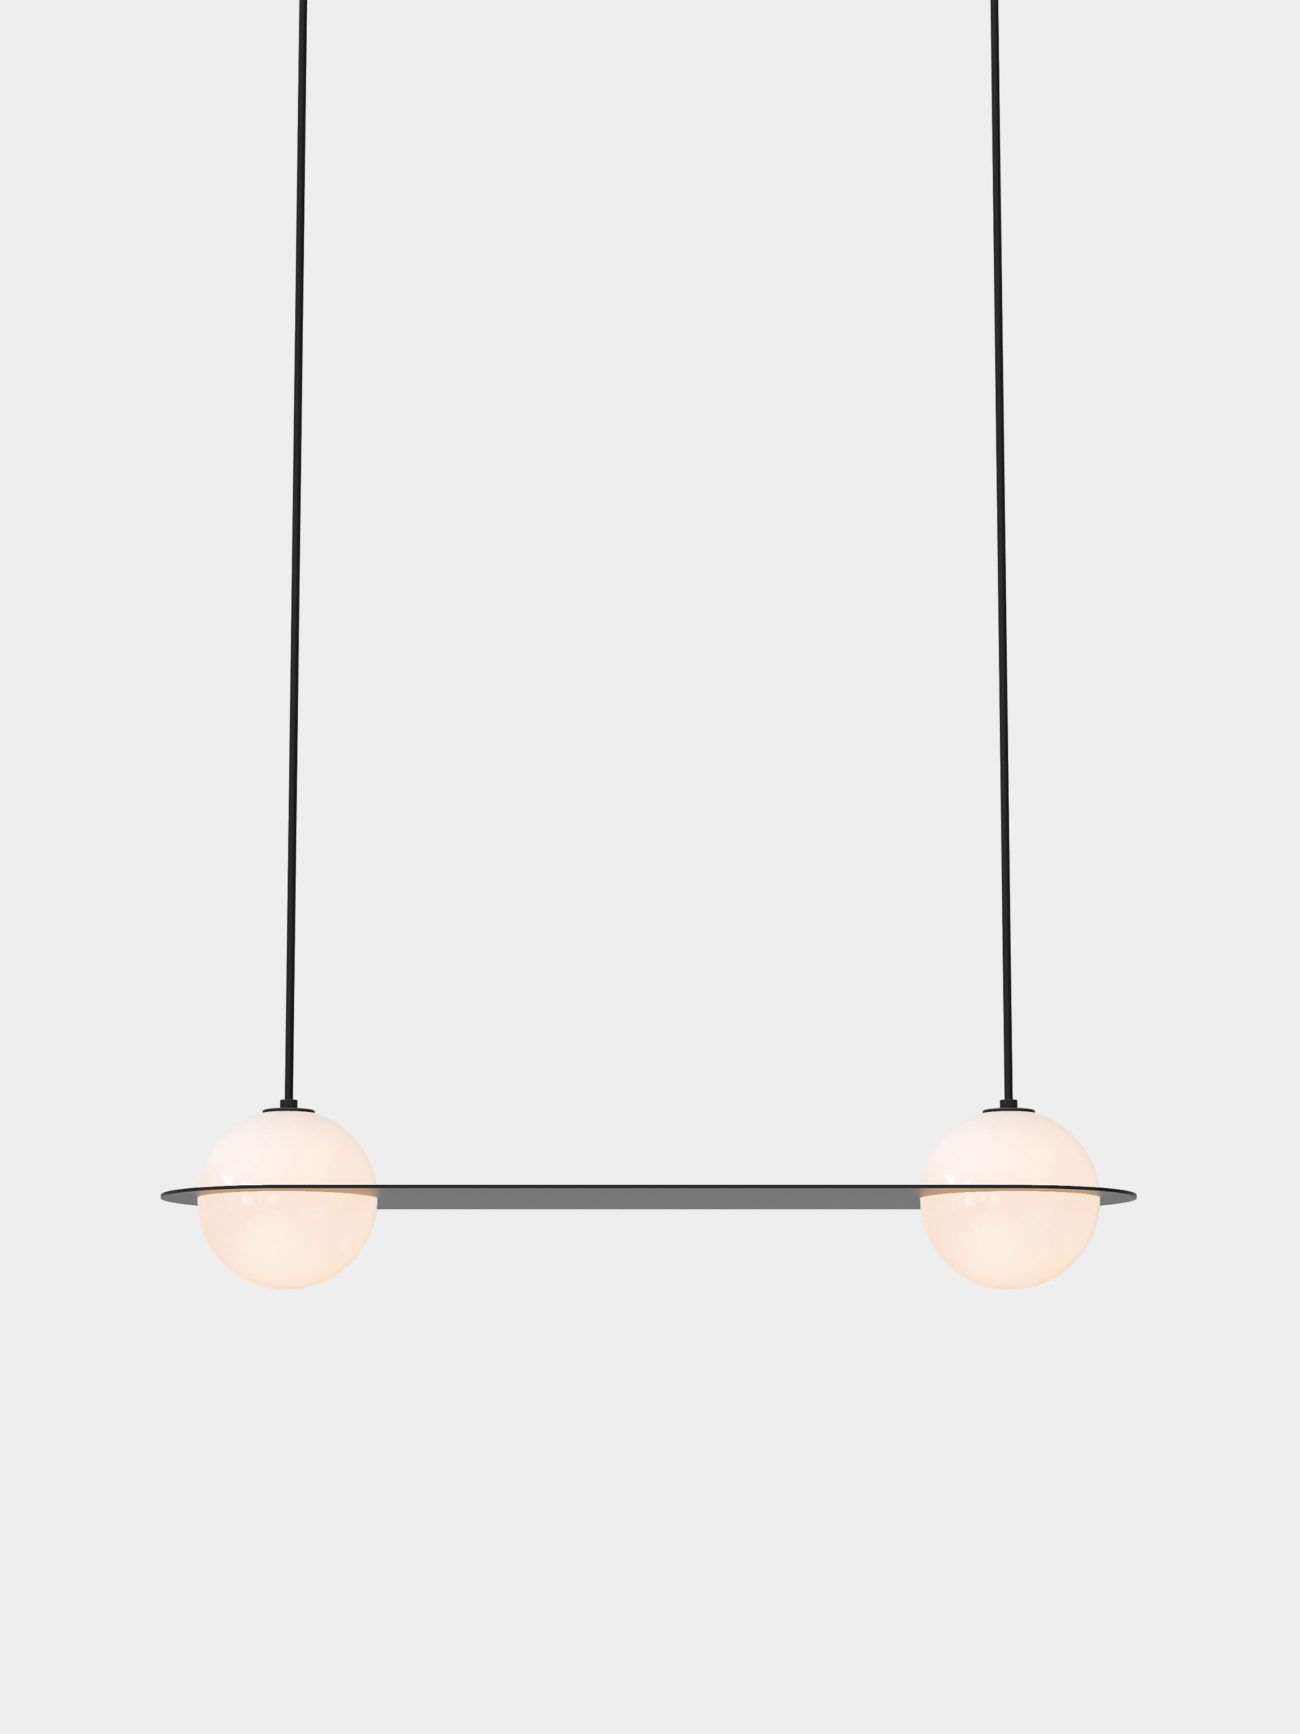 Laurent 03 interior design lighting lumiere